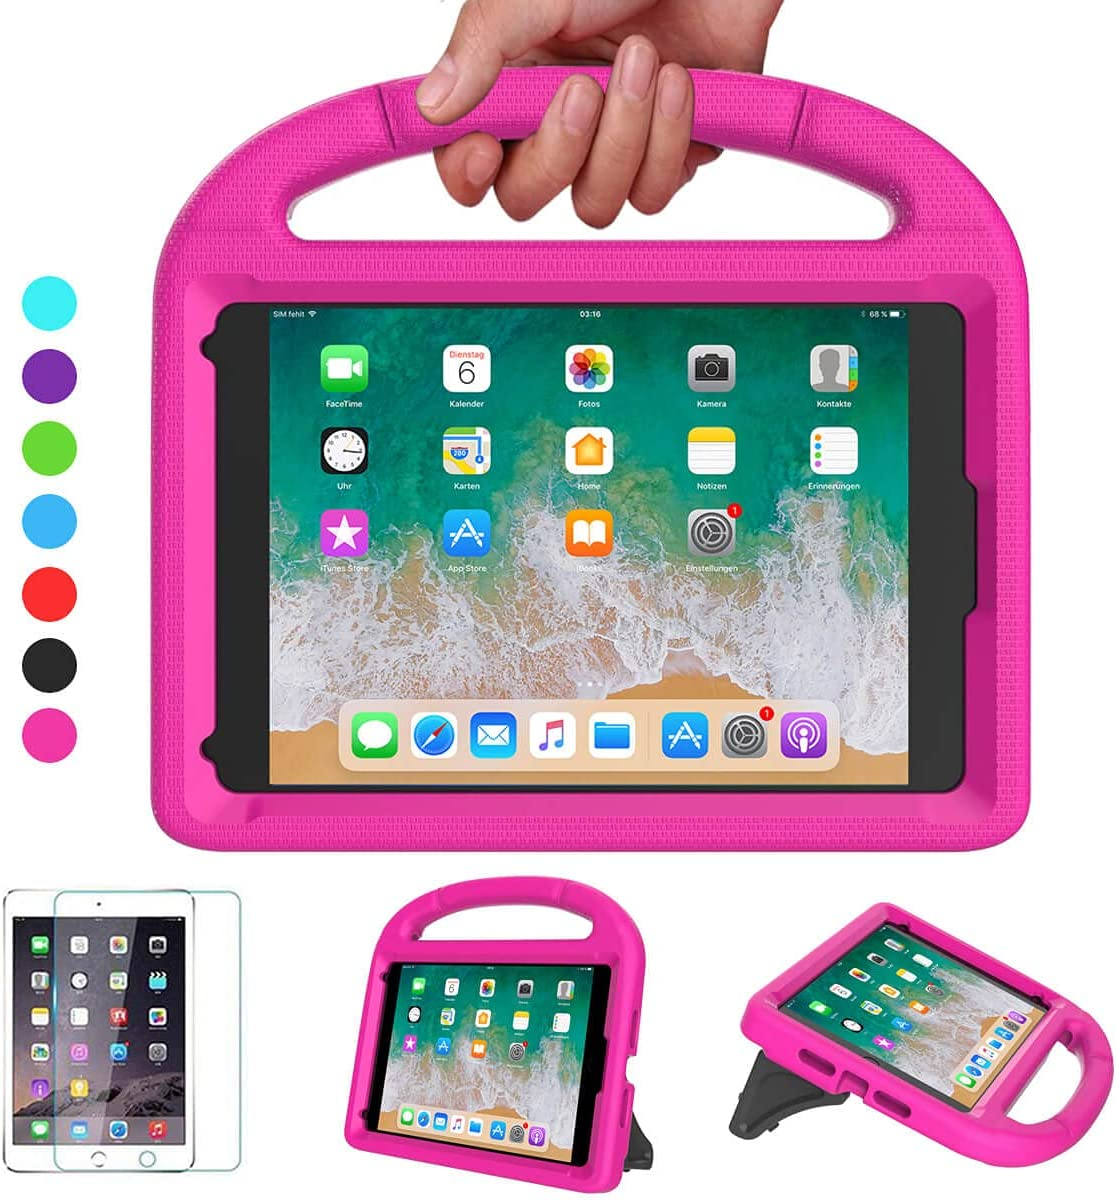 VICVOL iPad Mini 5 4 3 2 1 Case for Kids, Durable Lightweight Shockproof Handle Stand Protective Case with Screen Protector for 7.9-inch iPad Mini 5th/4th/3rd/2nd/1st Generation, Pink